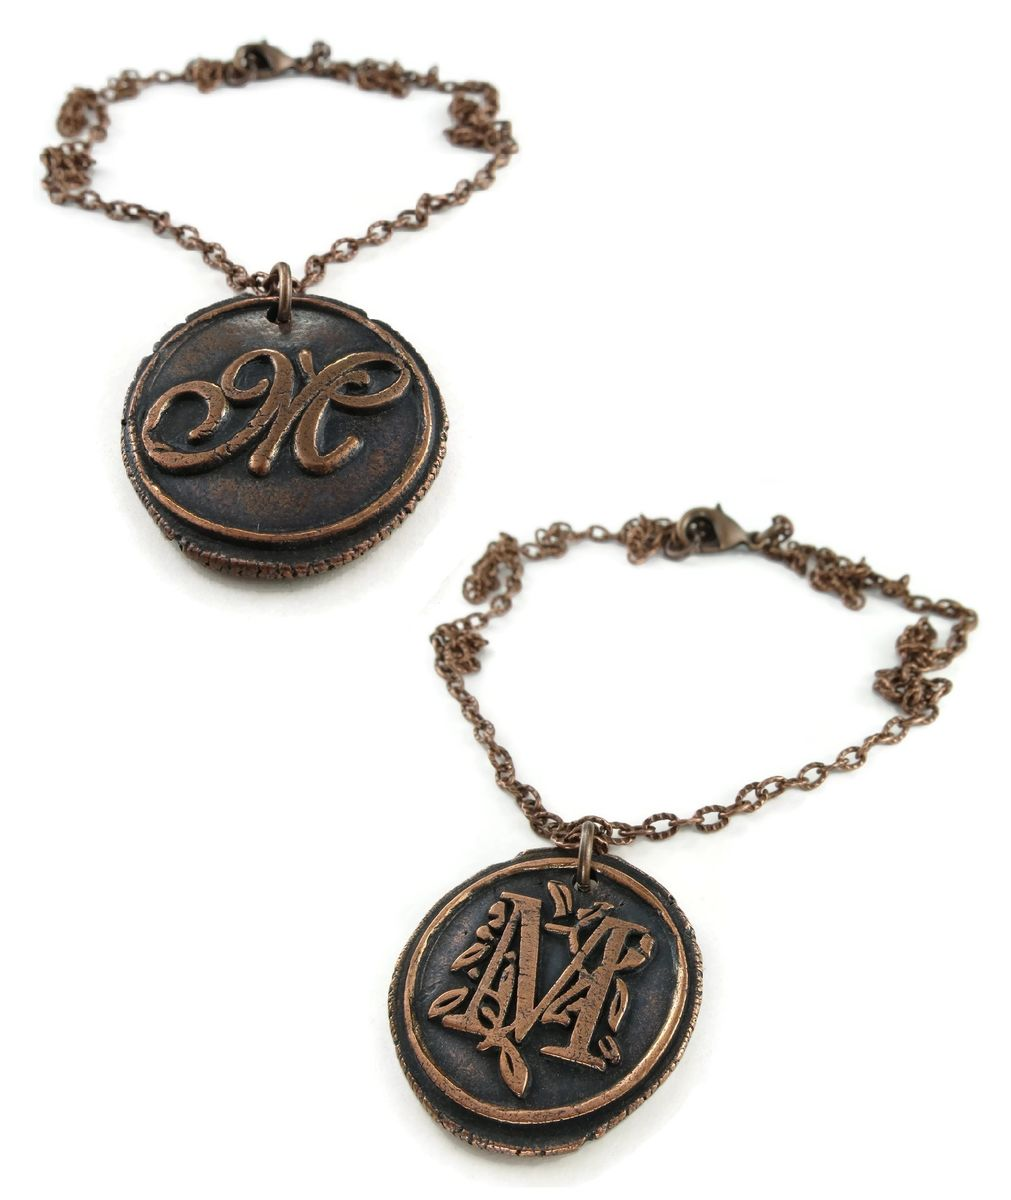 Custom Order Copper Wax Seal Pendant - product images  of